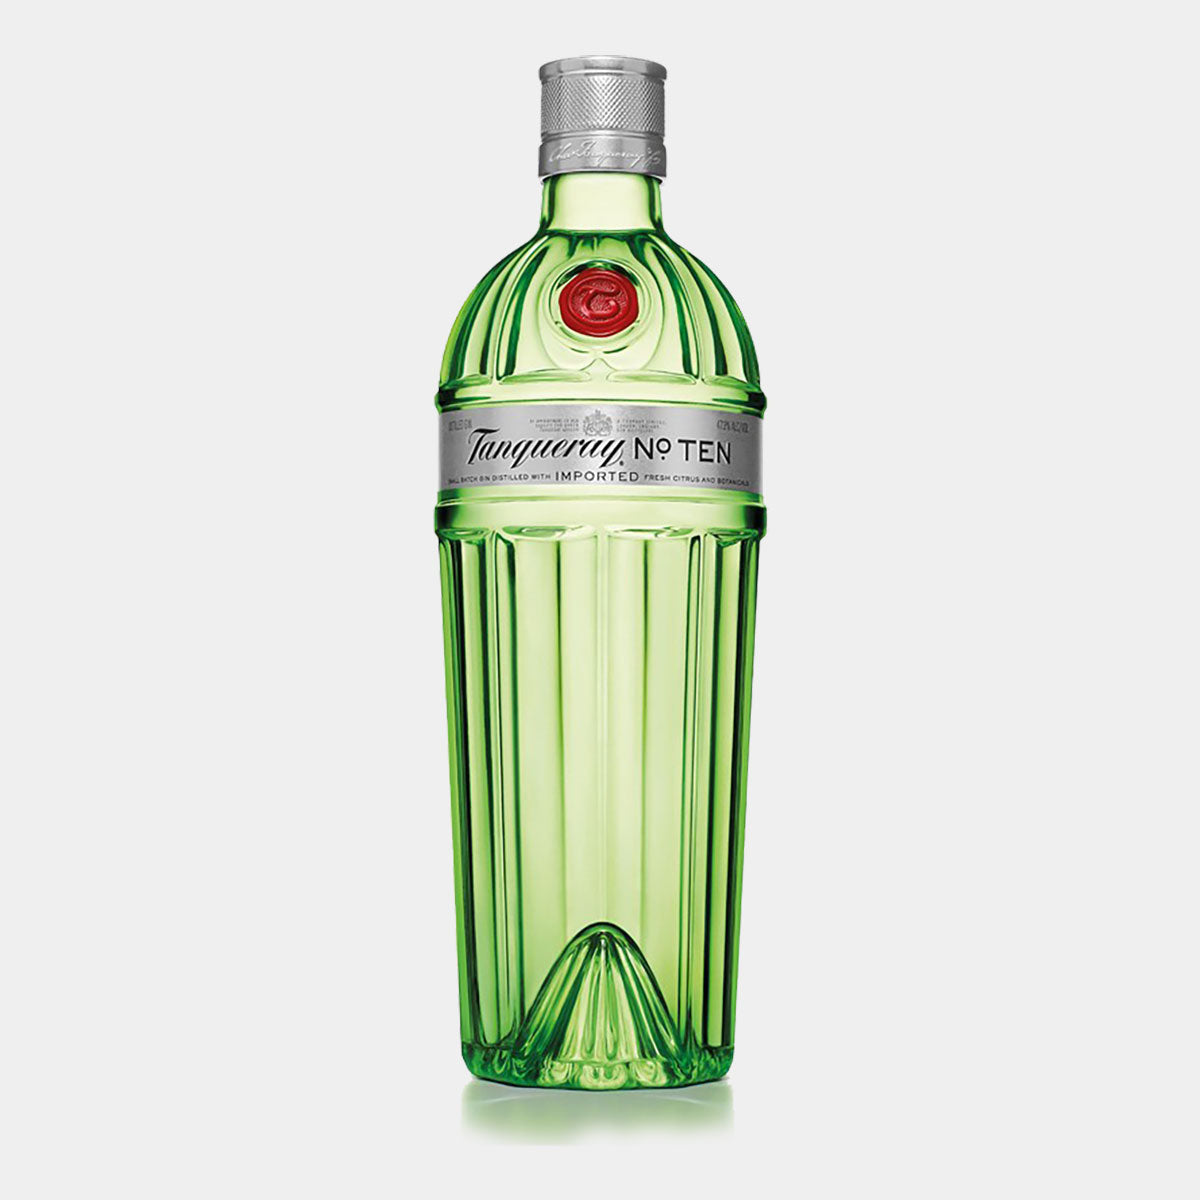 Tanqueray Ten - Wines and Copas Barcelona